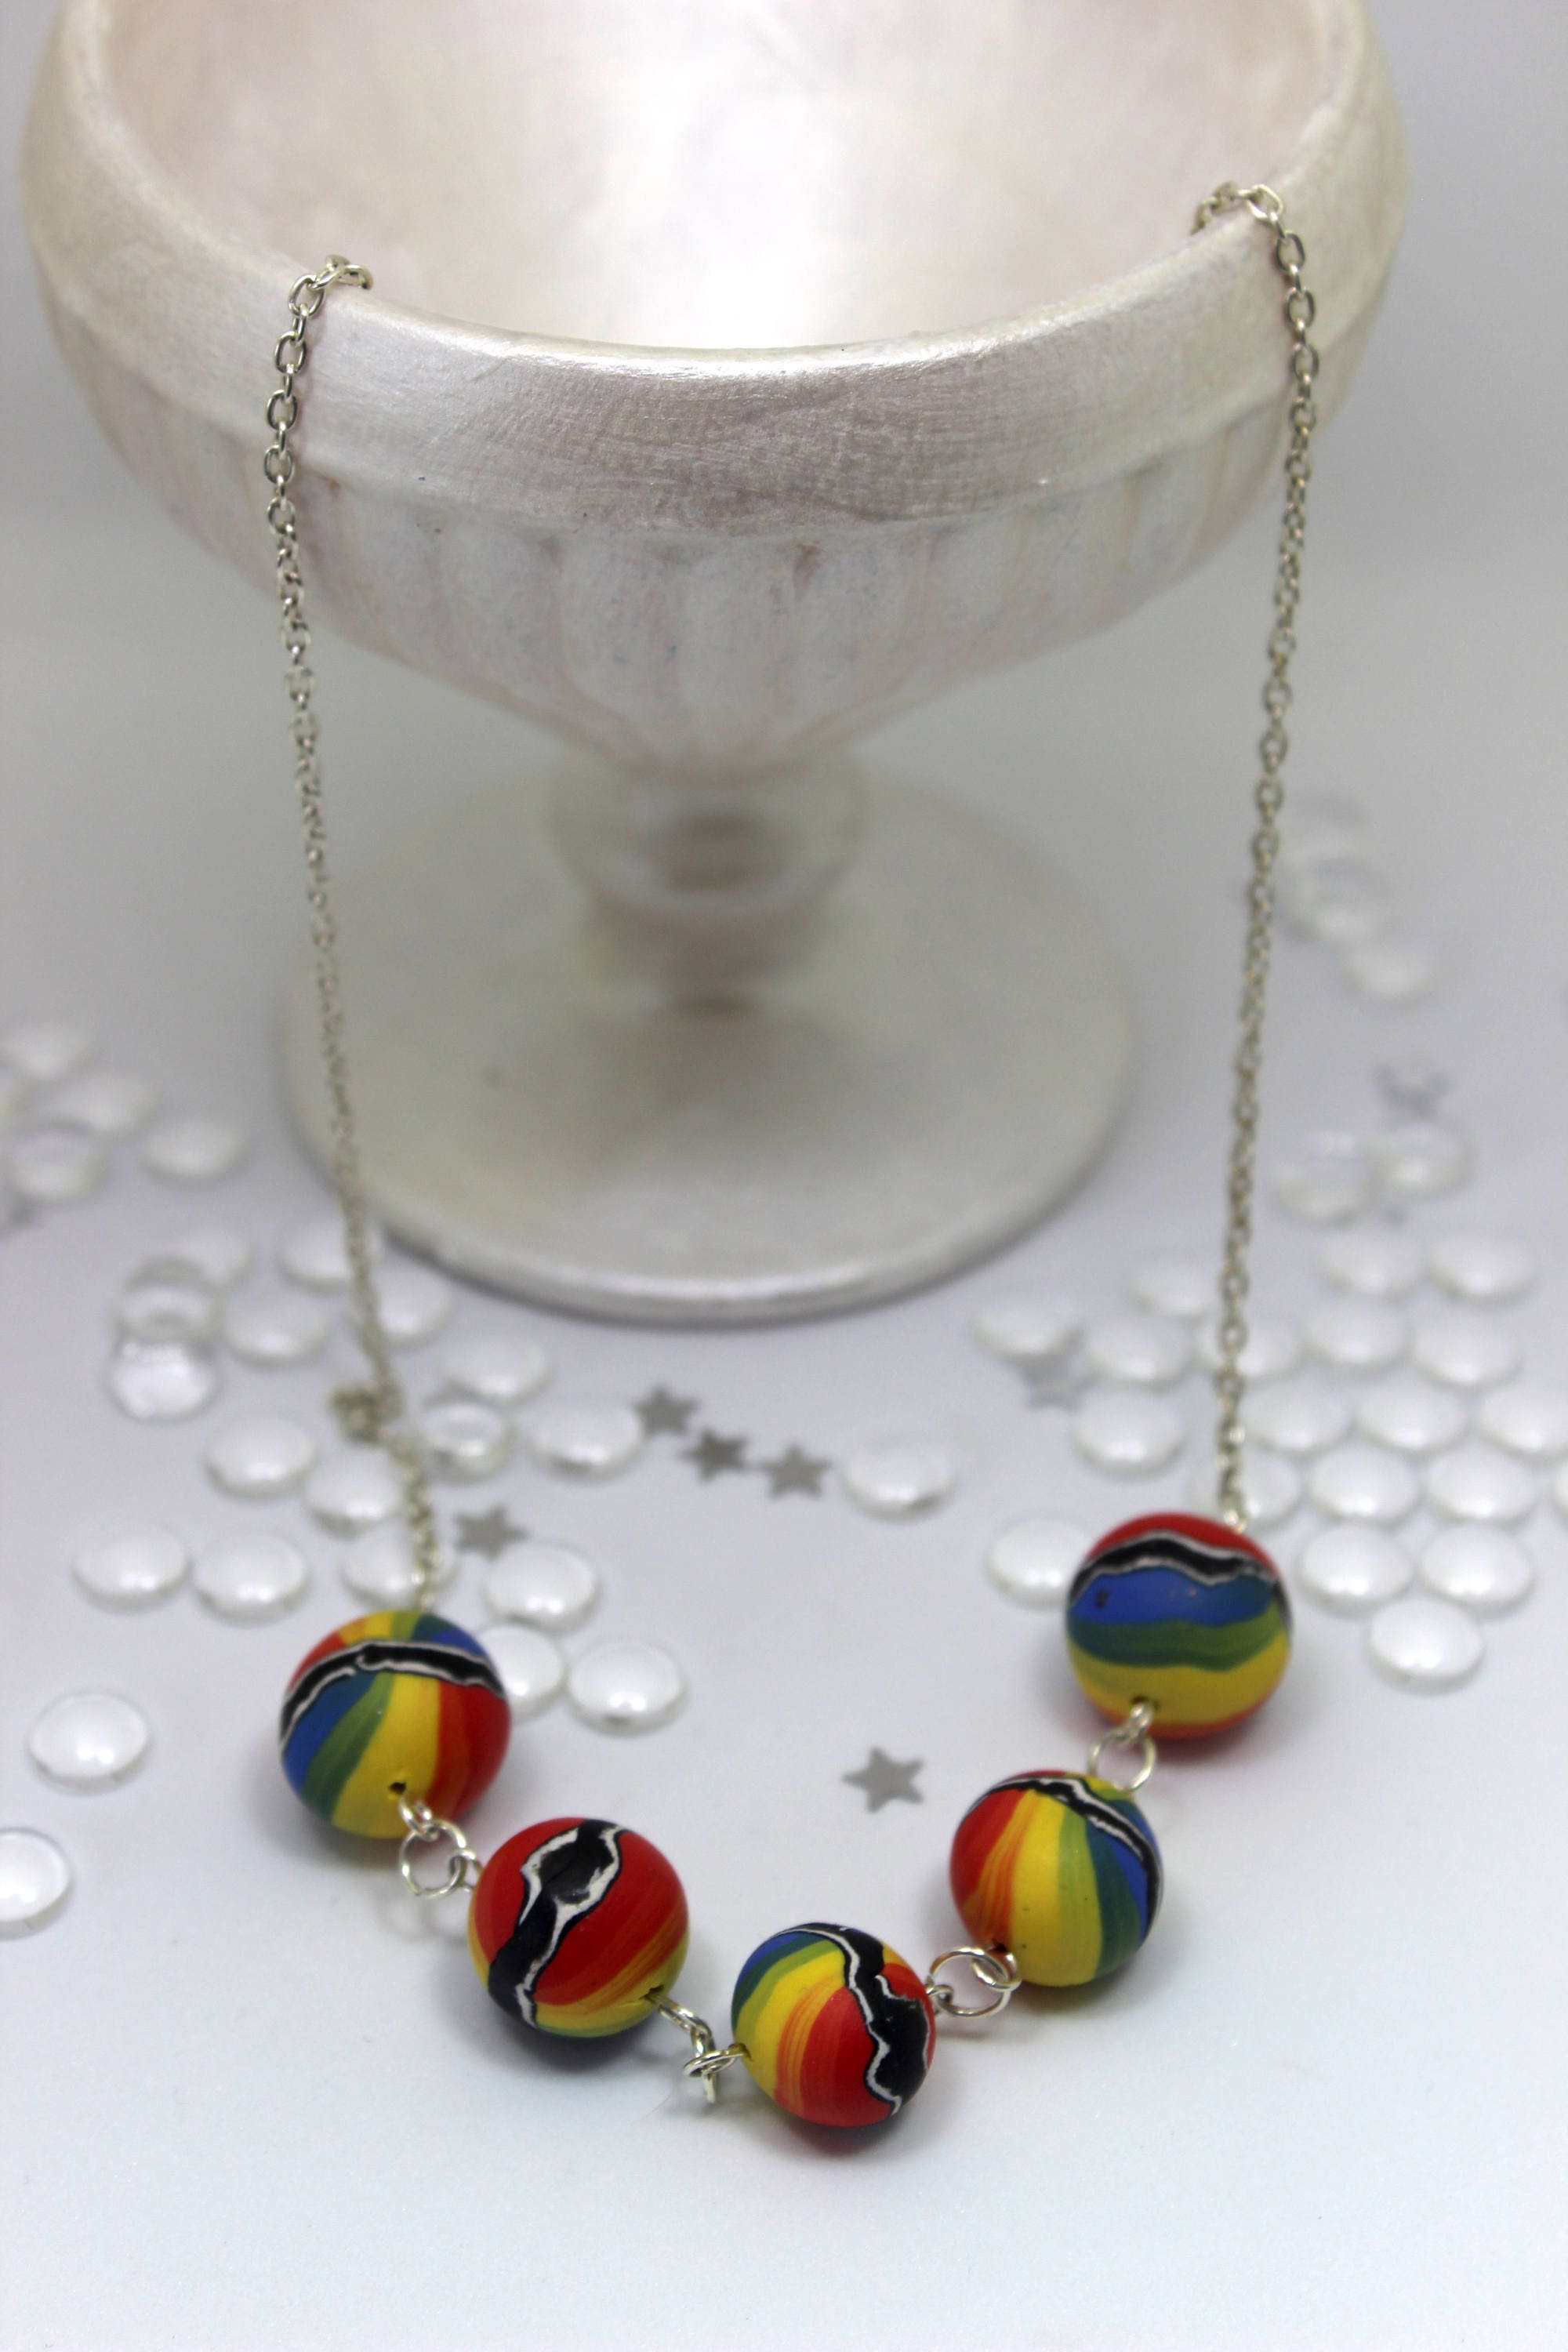 Rainbow Beaded necklace Clay necklace Beaded necklace Rainbow necklace Gift for girlfriend Hippy necklace Silver necklace Wife gift